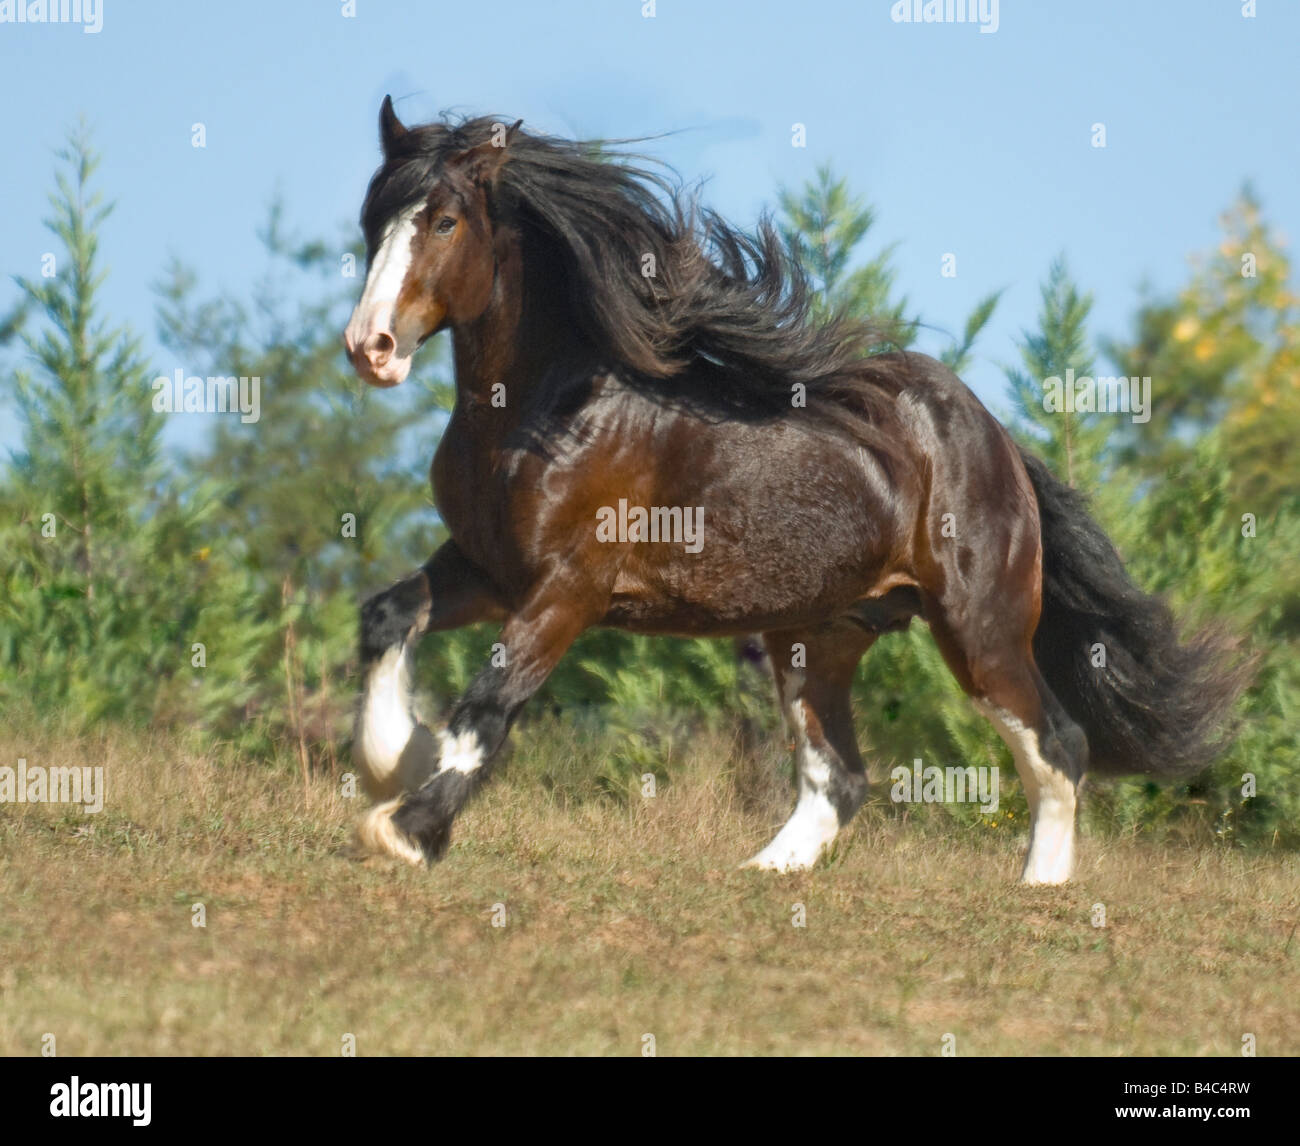 Shire Draft Horse Stallion Stock Photo Alamy